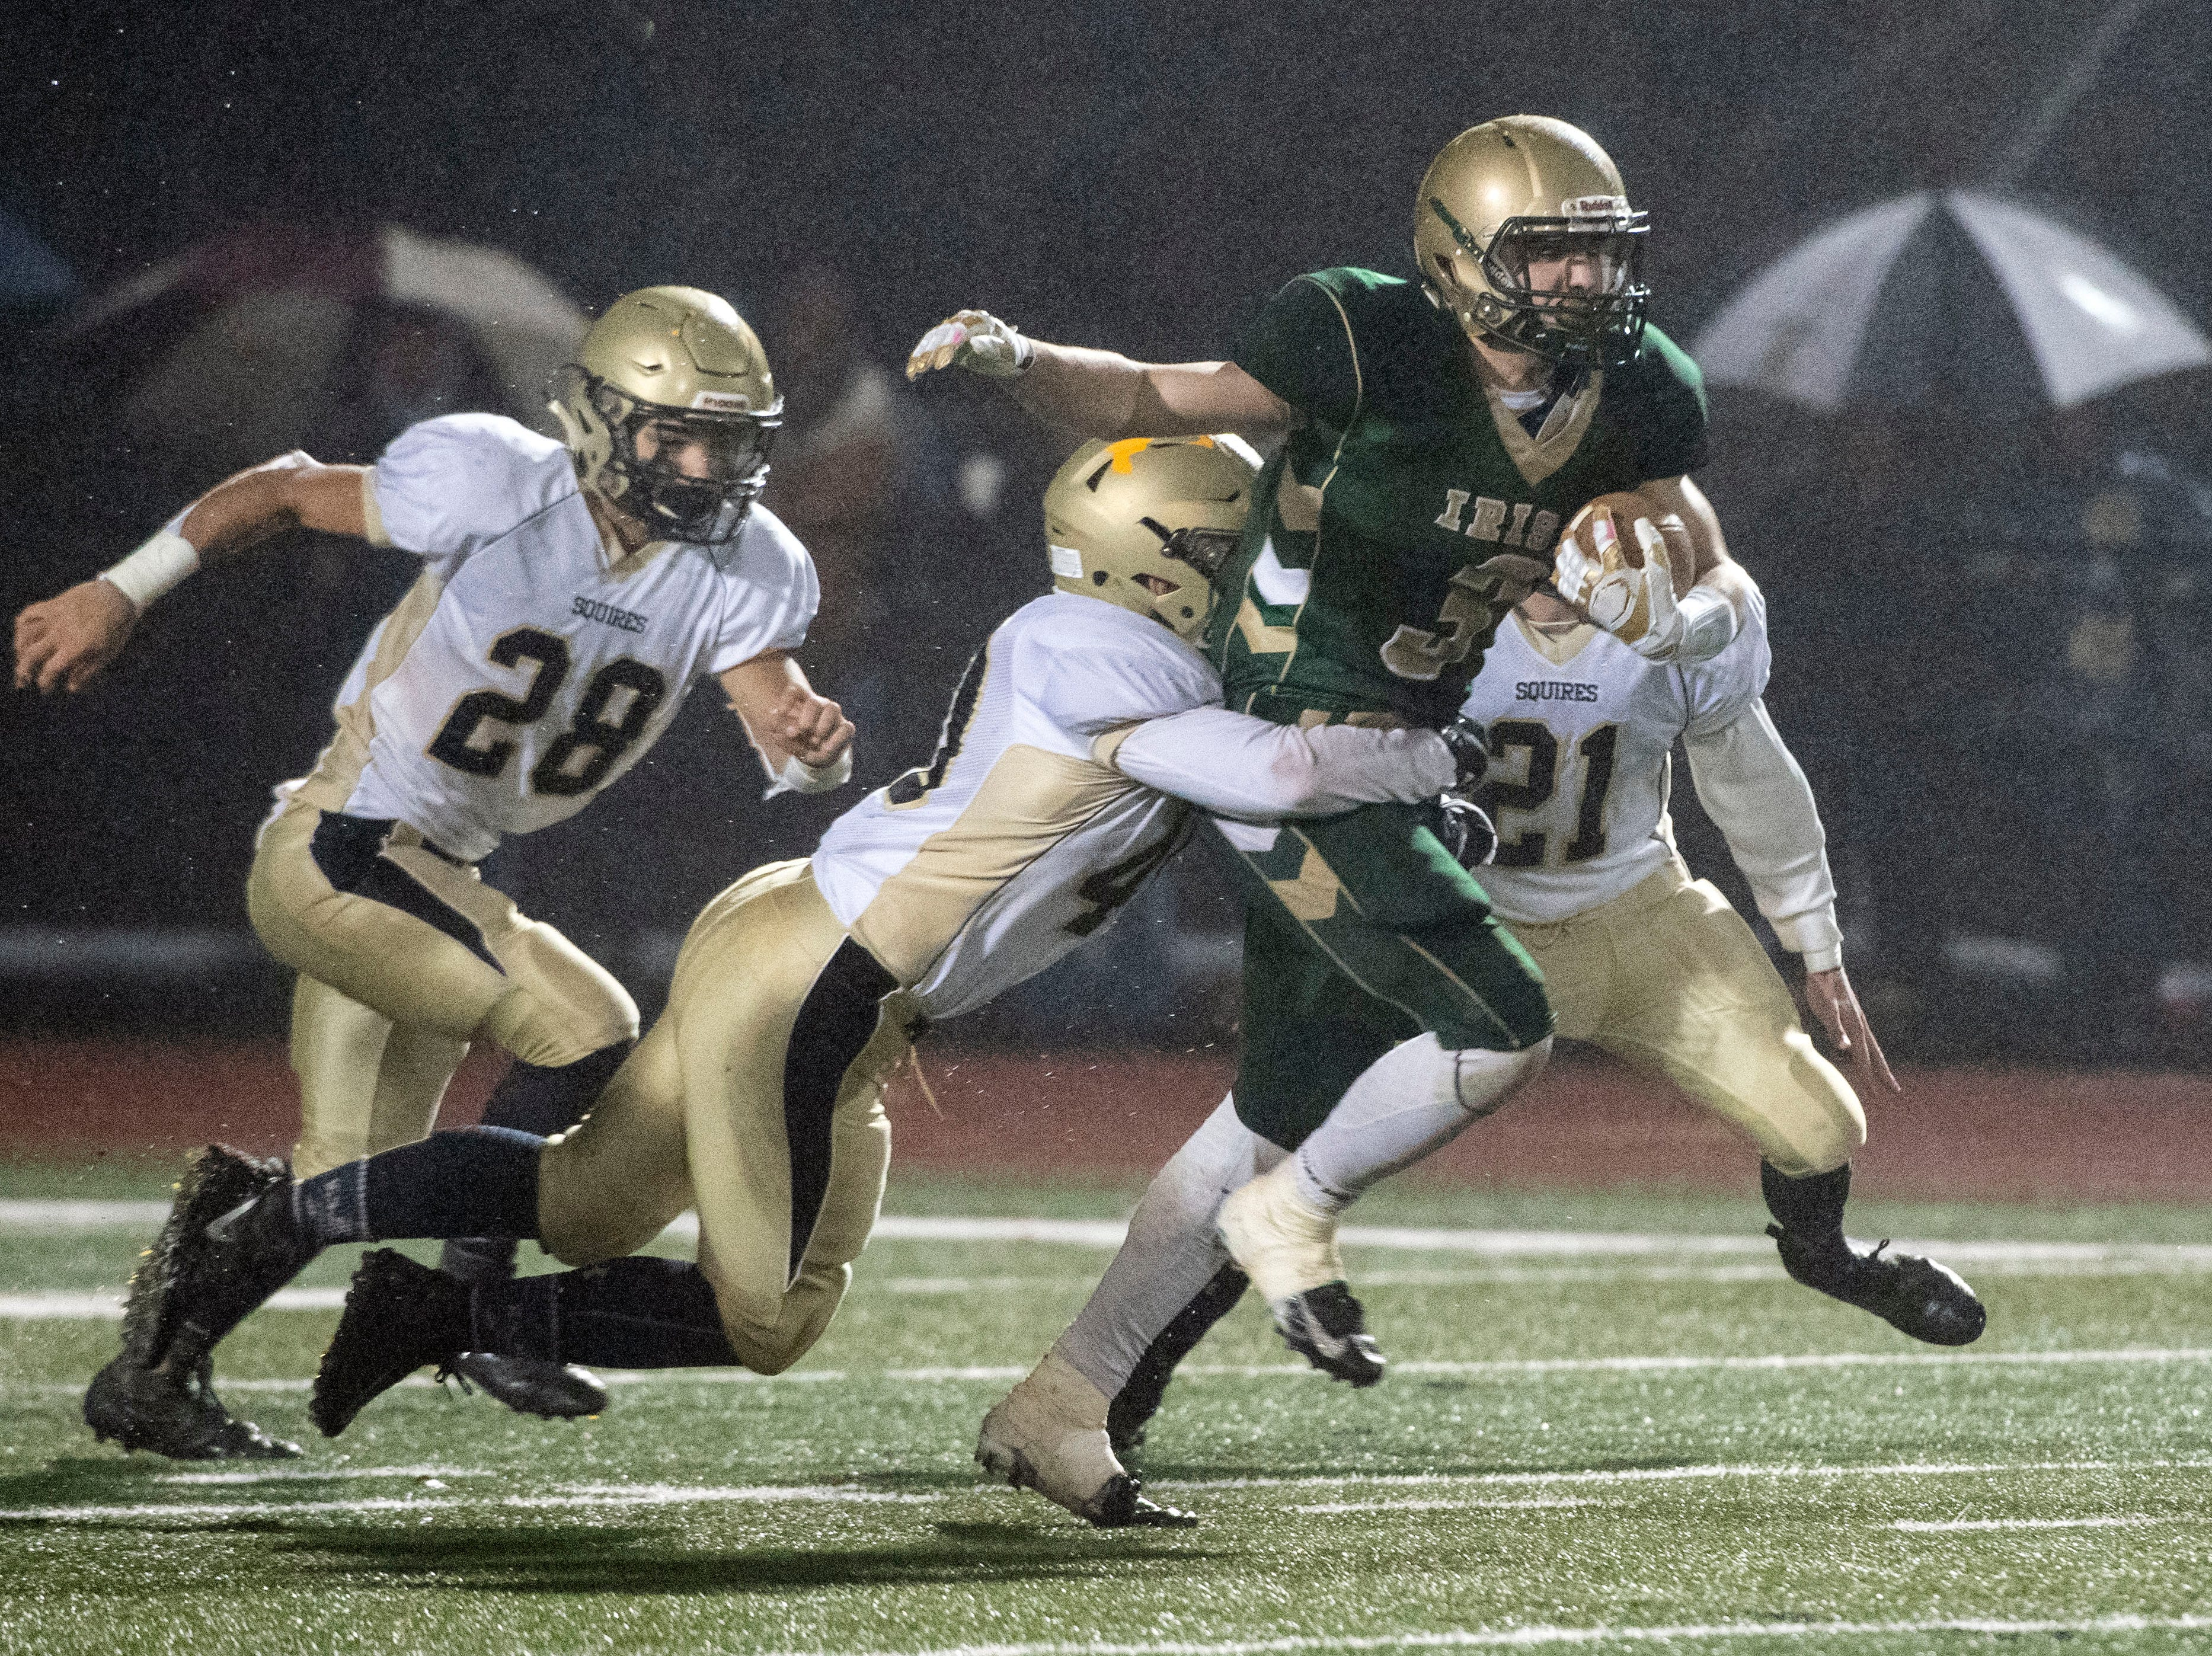 York Catholic's Cole Witman (3) runs the ball while a Delone Catholic defensemen wraps up a tackle during the District III 2A championship game at South Western High School on Nov. 9, 2018. The York Catholic Fighting Irish beat the Delone Catholic Squires in overtime, 28-21.